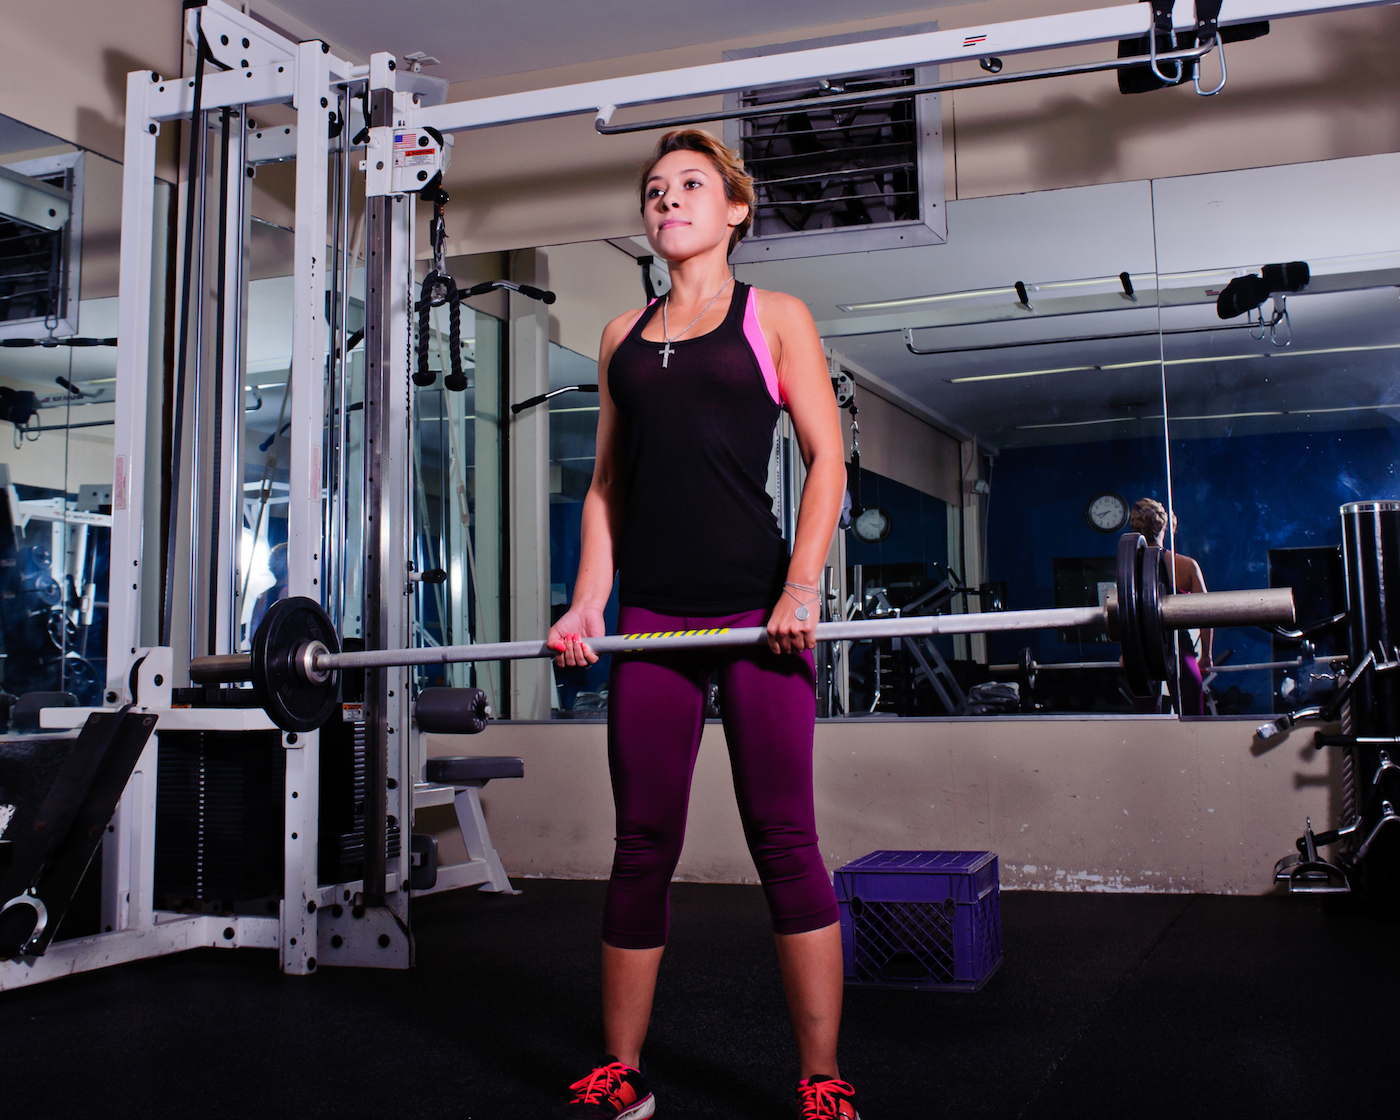 personal training workout session